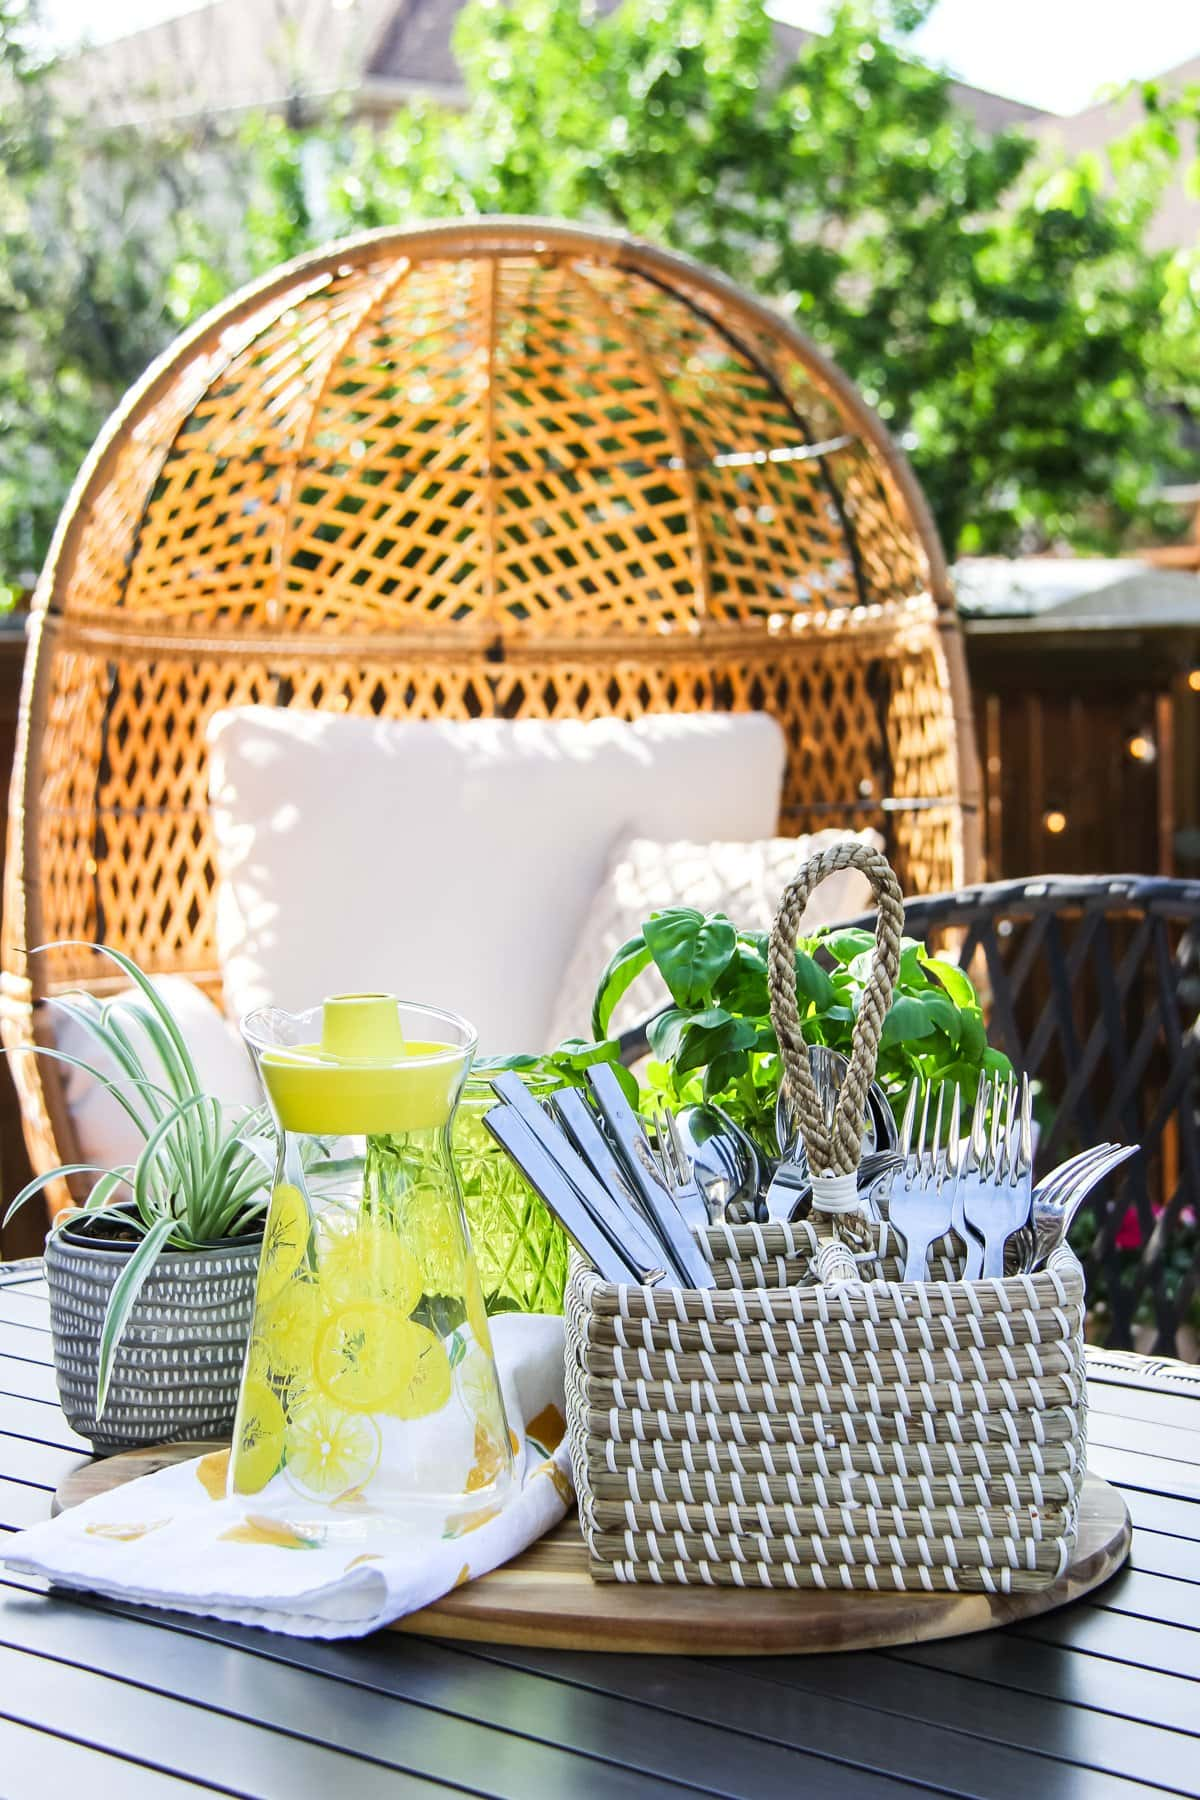 a basket of cutlery, a yellow glass jug and a plant sit on a table. in the background is a wicker chair